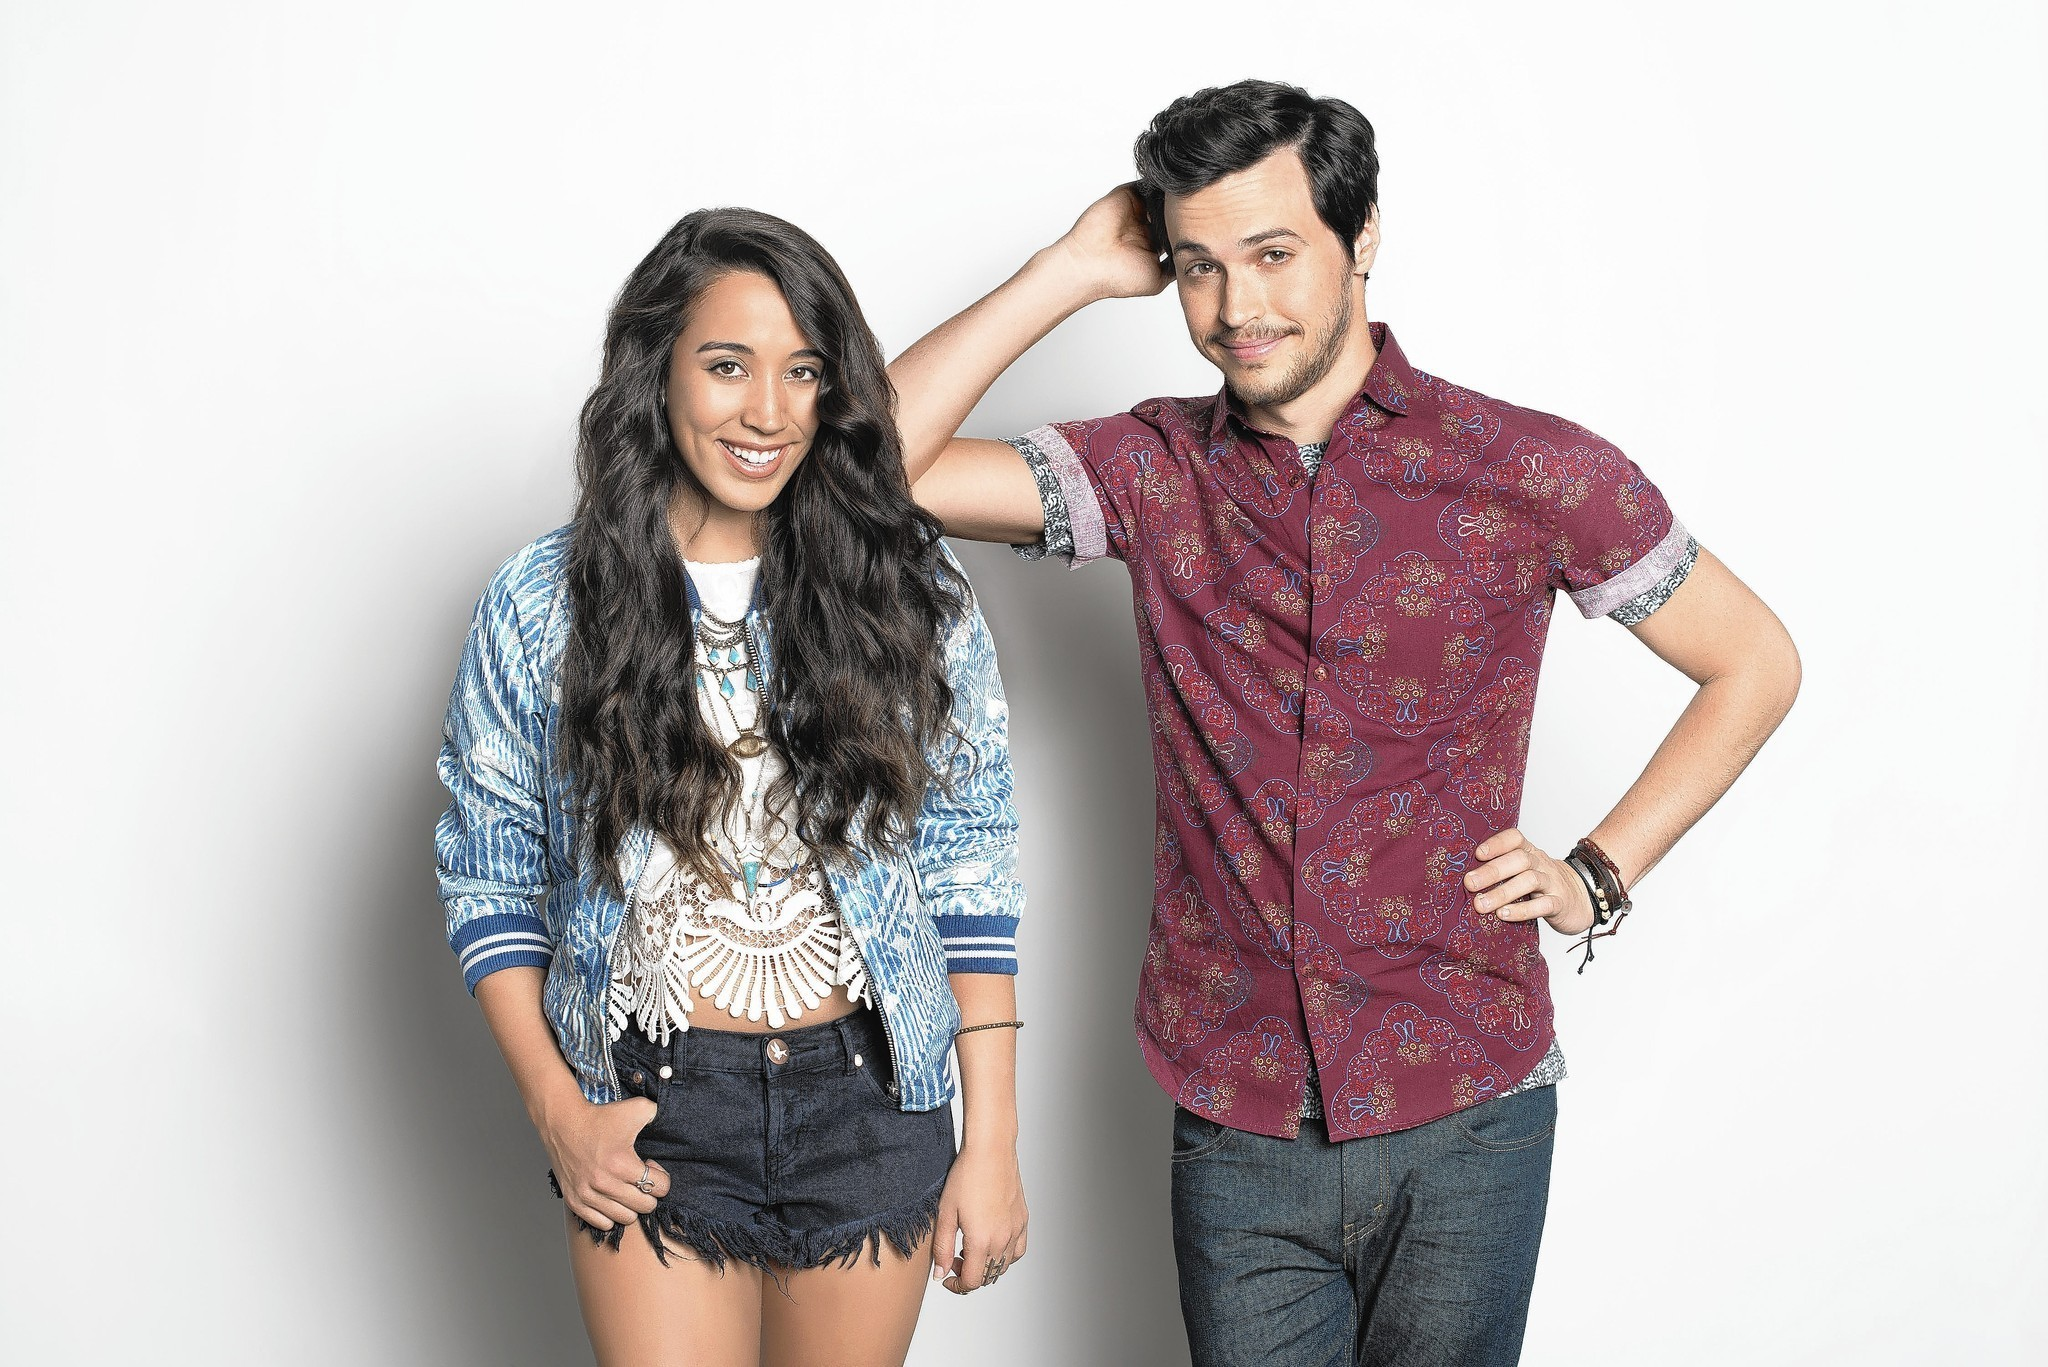 X Factor Winners Alex Amp Sierra Play Red Hot Amp Boom